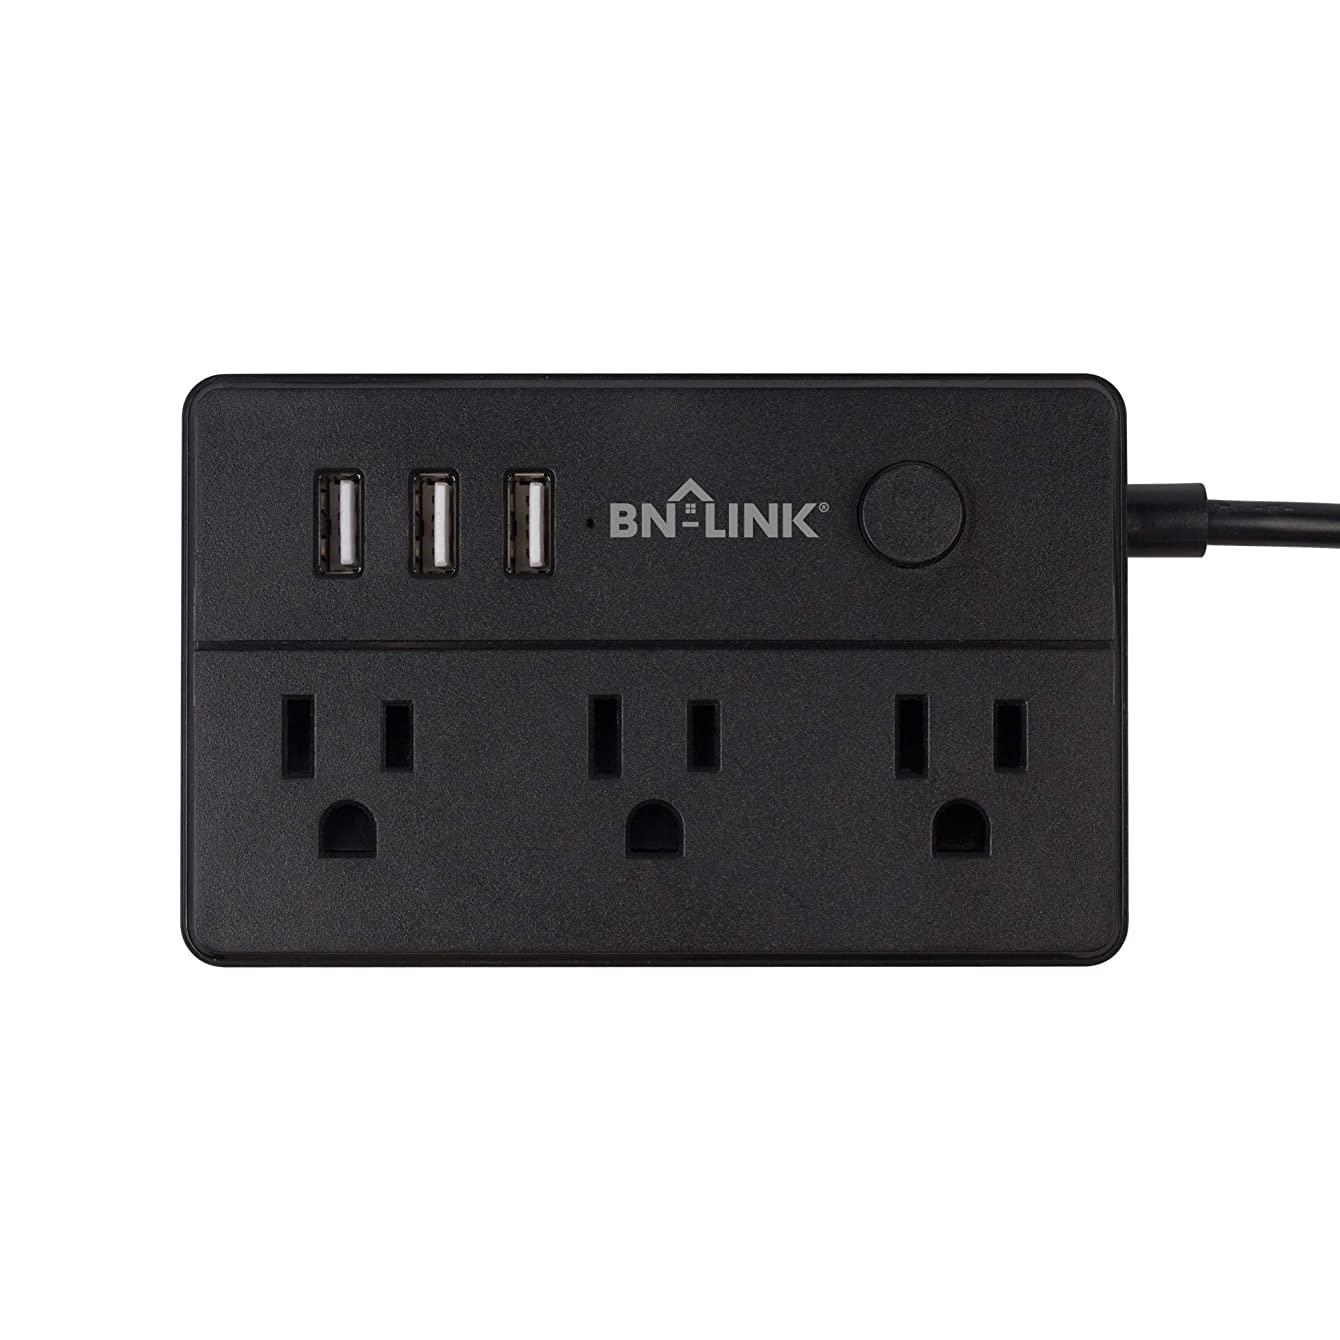 BN-LINK CP-C05 Mini Desk Power Strip with 3 Outlets and 3 USB Ports, 5 Feet Cord, Black